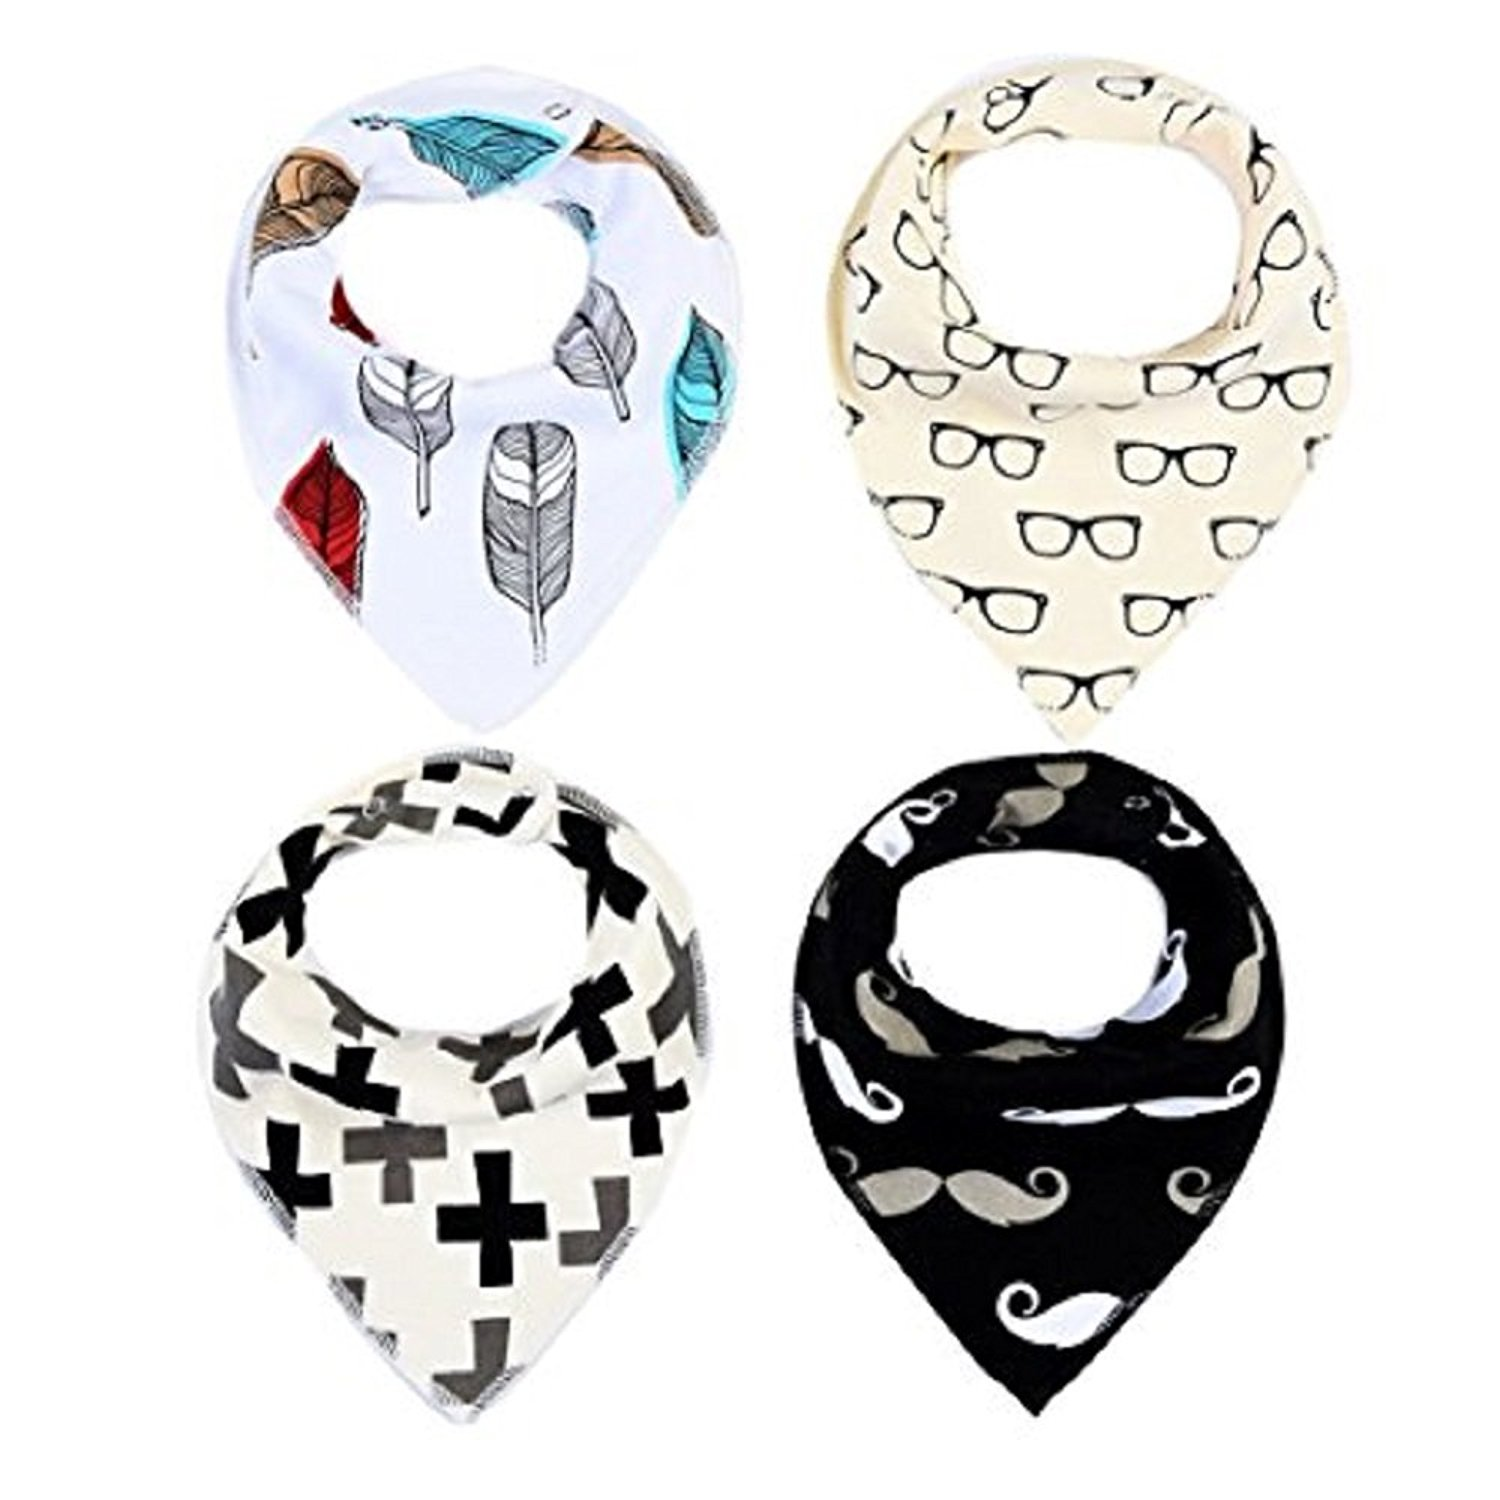 Baby Bandana Drool Bib Set Of 4Organic Super Absorbent Soft Chic Drooling And Teething Bibs B072MGMS23